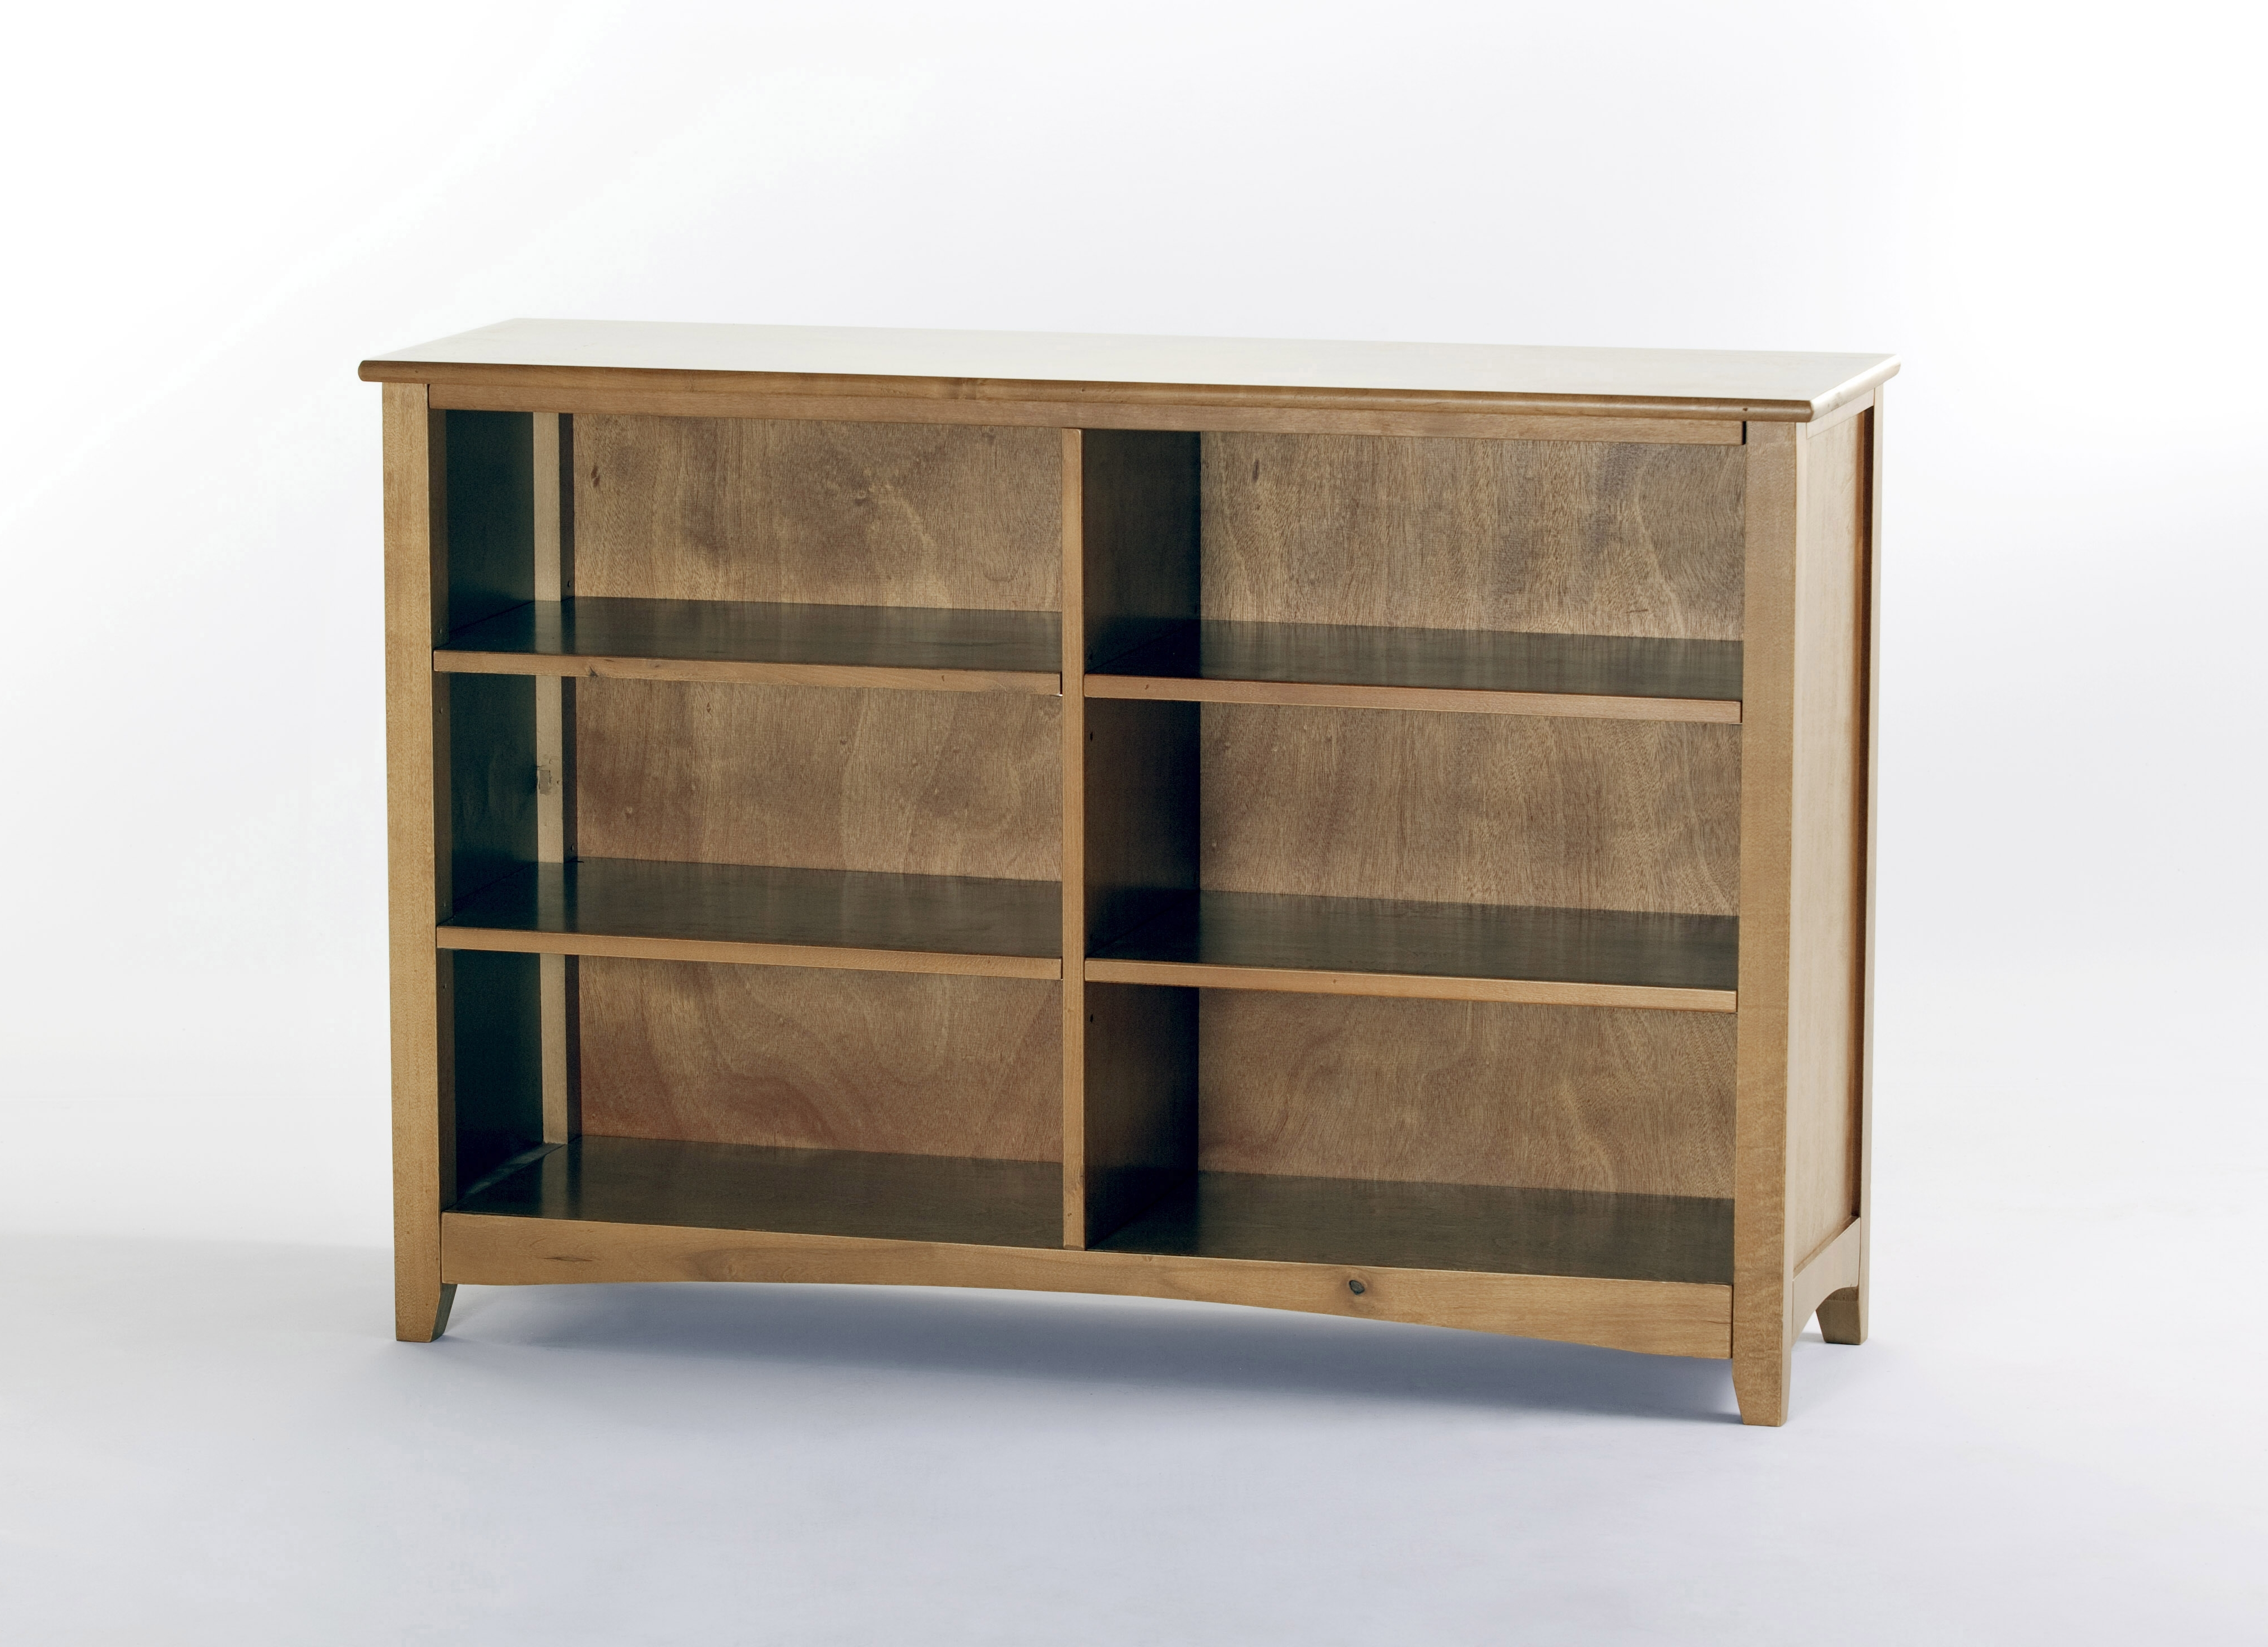 Preferred Inspirations: Cool Horizontal Bookcase For Storing Books And Intended For Long Horizontal Bookcases (View 9 of 15)